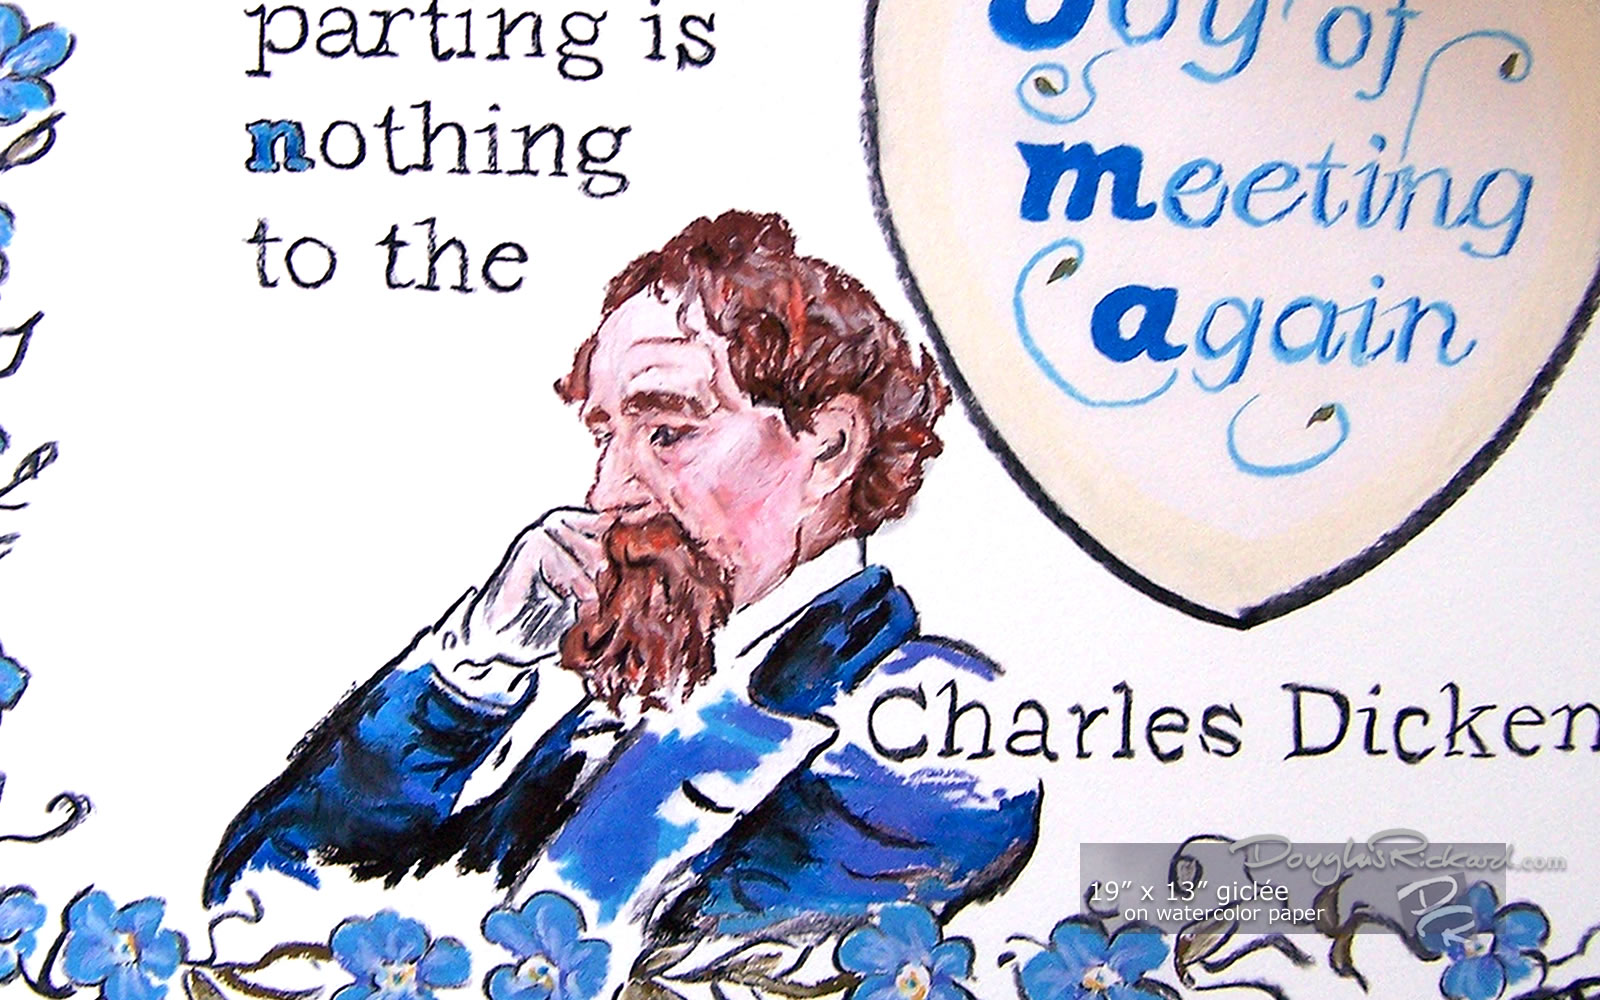 Charles Dickens S Quotes Famous And Not Much